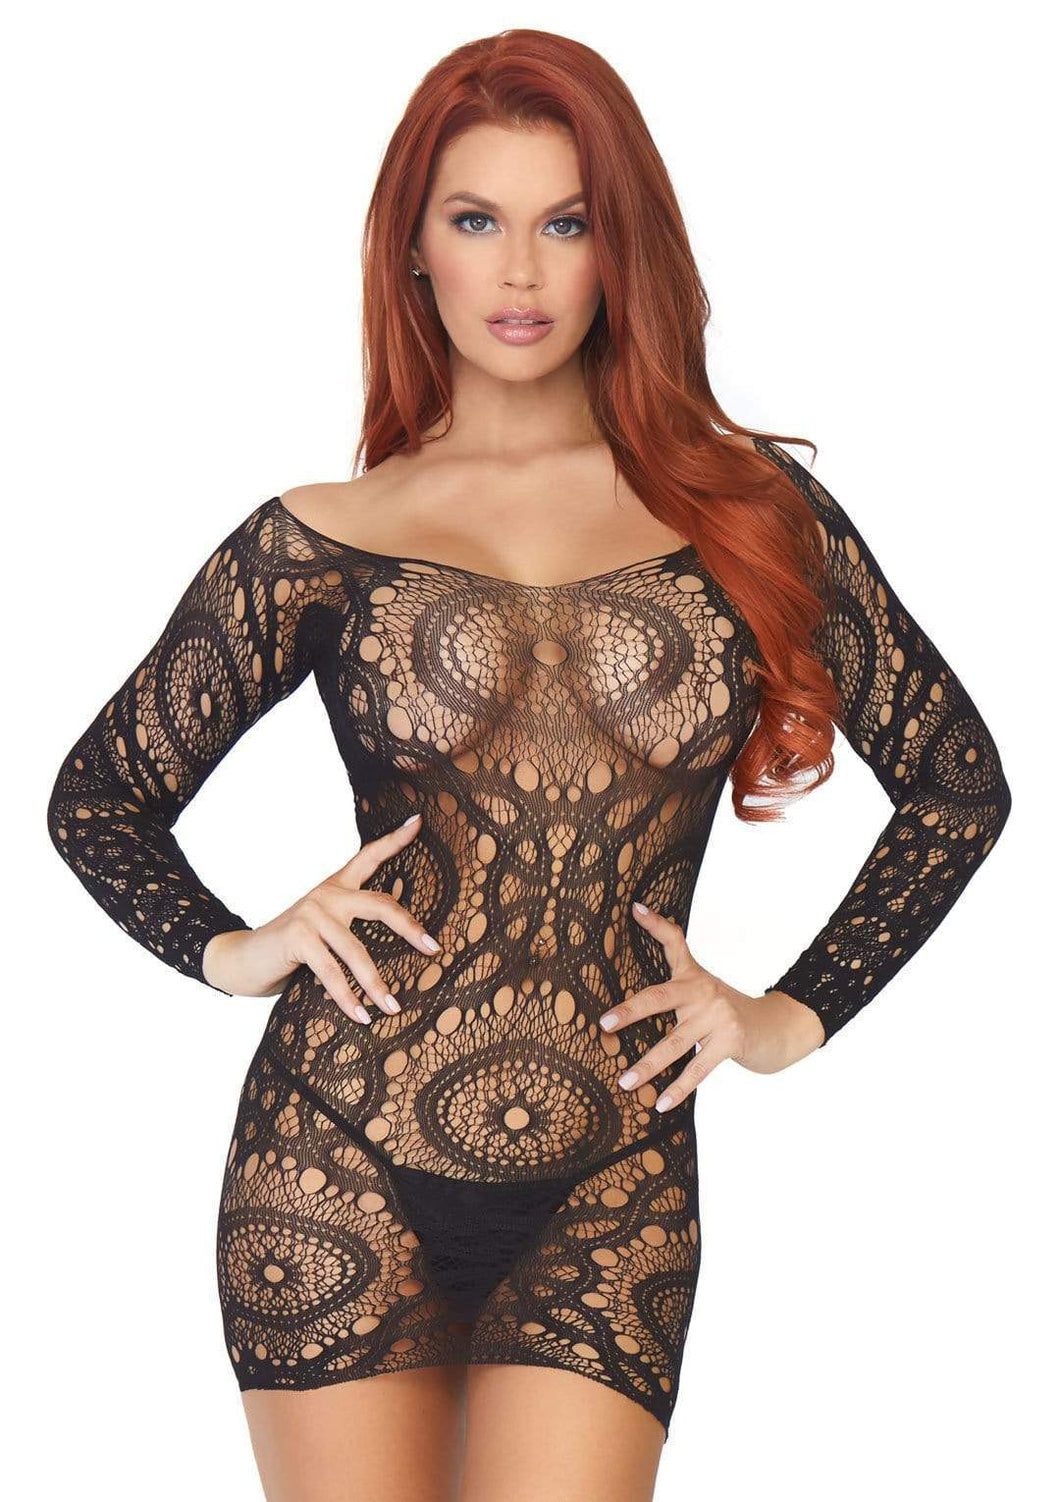 Leg Avenue Crochet lace long sleeved mini dress.